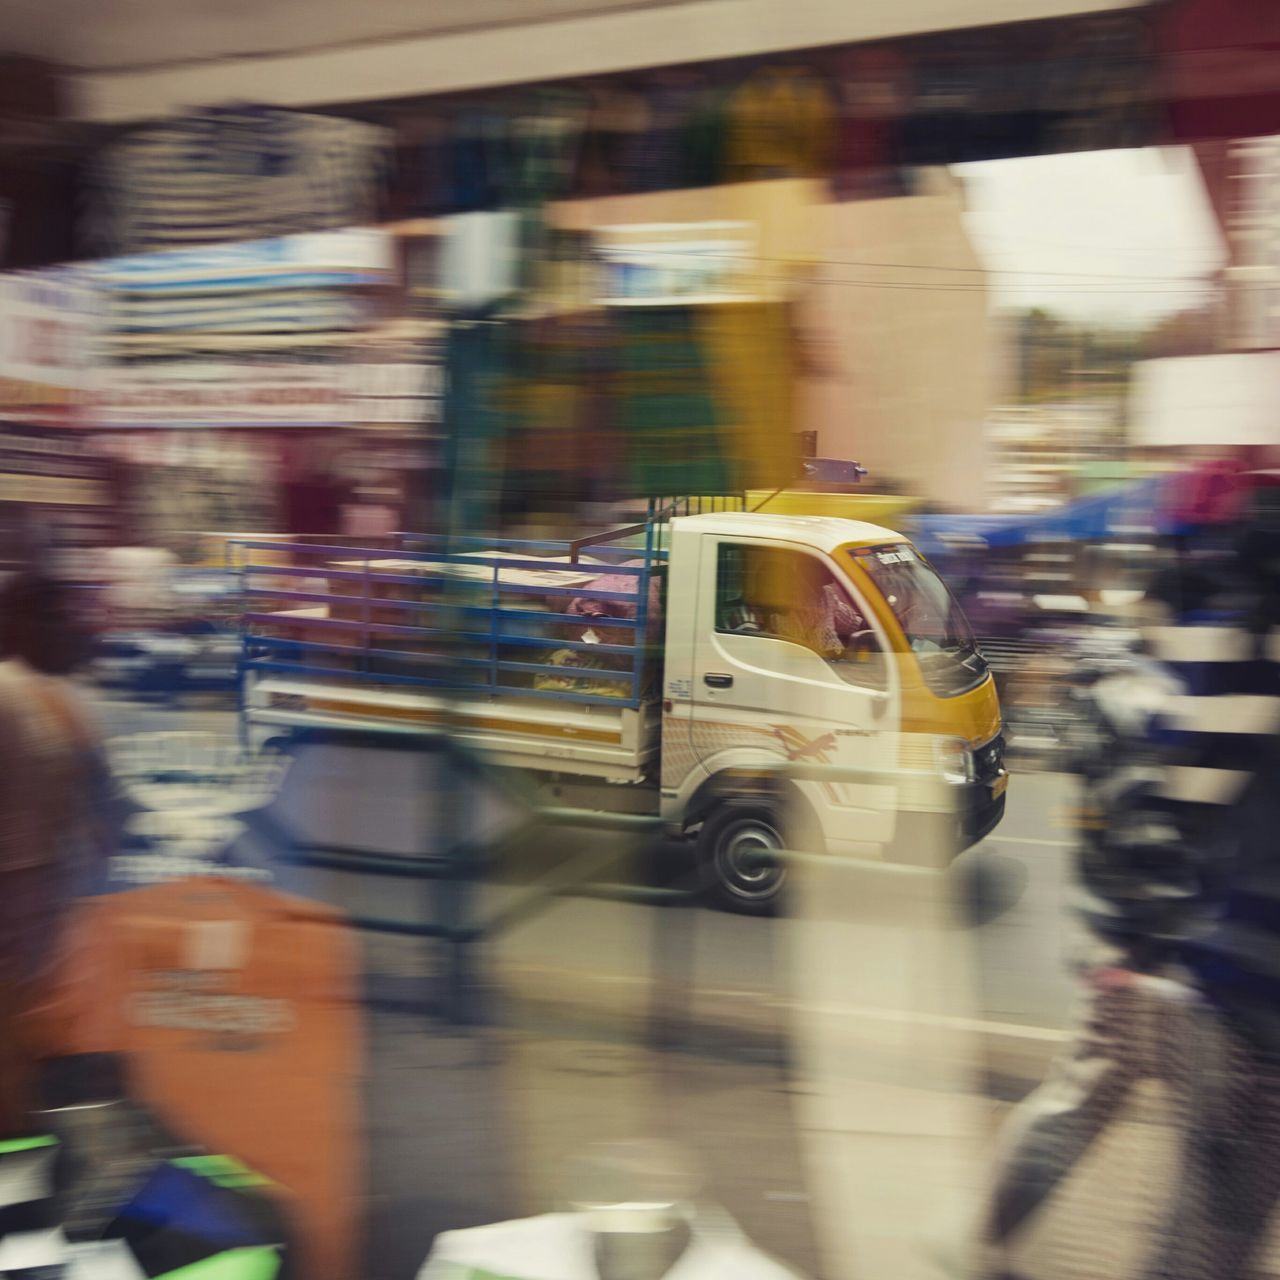 blurred motion, transportation, mode of transport, speed, land vehicle, public transportation, motion, car, day, no people, outdoors, city